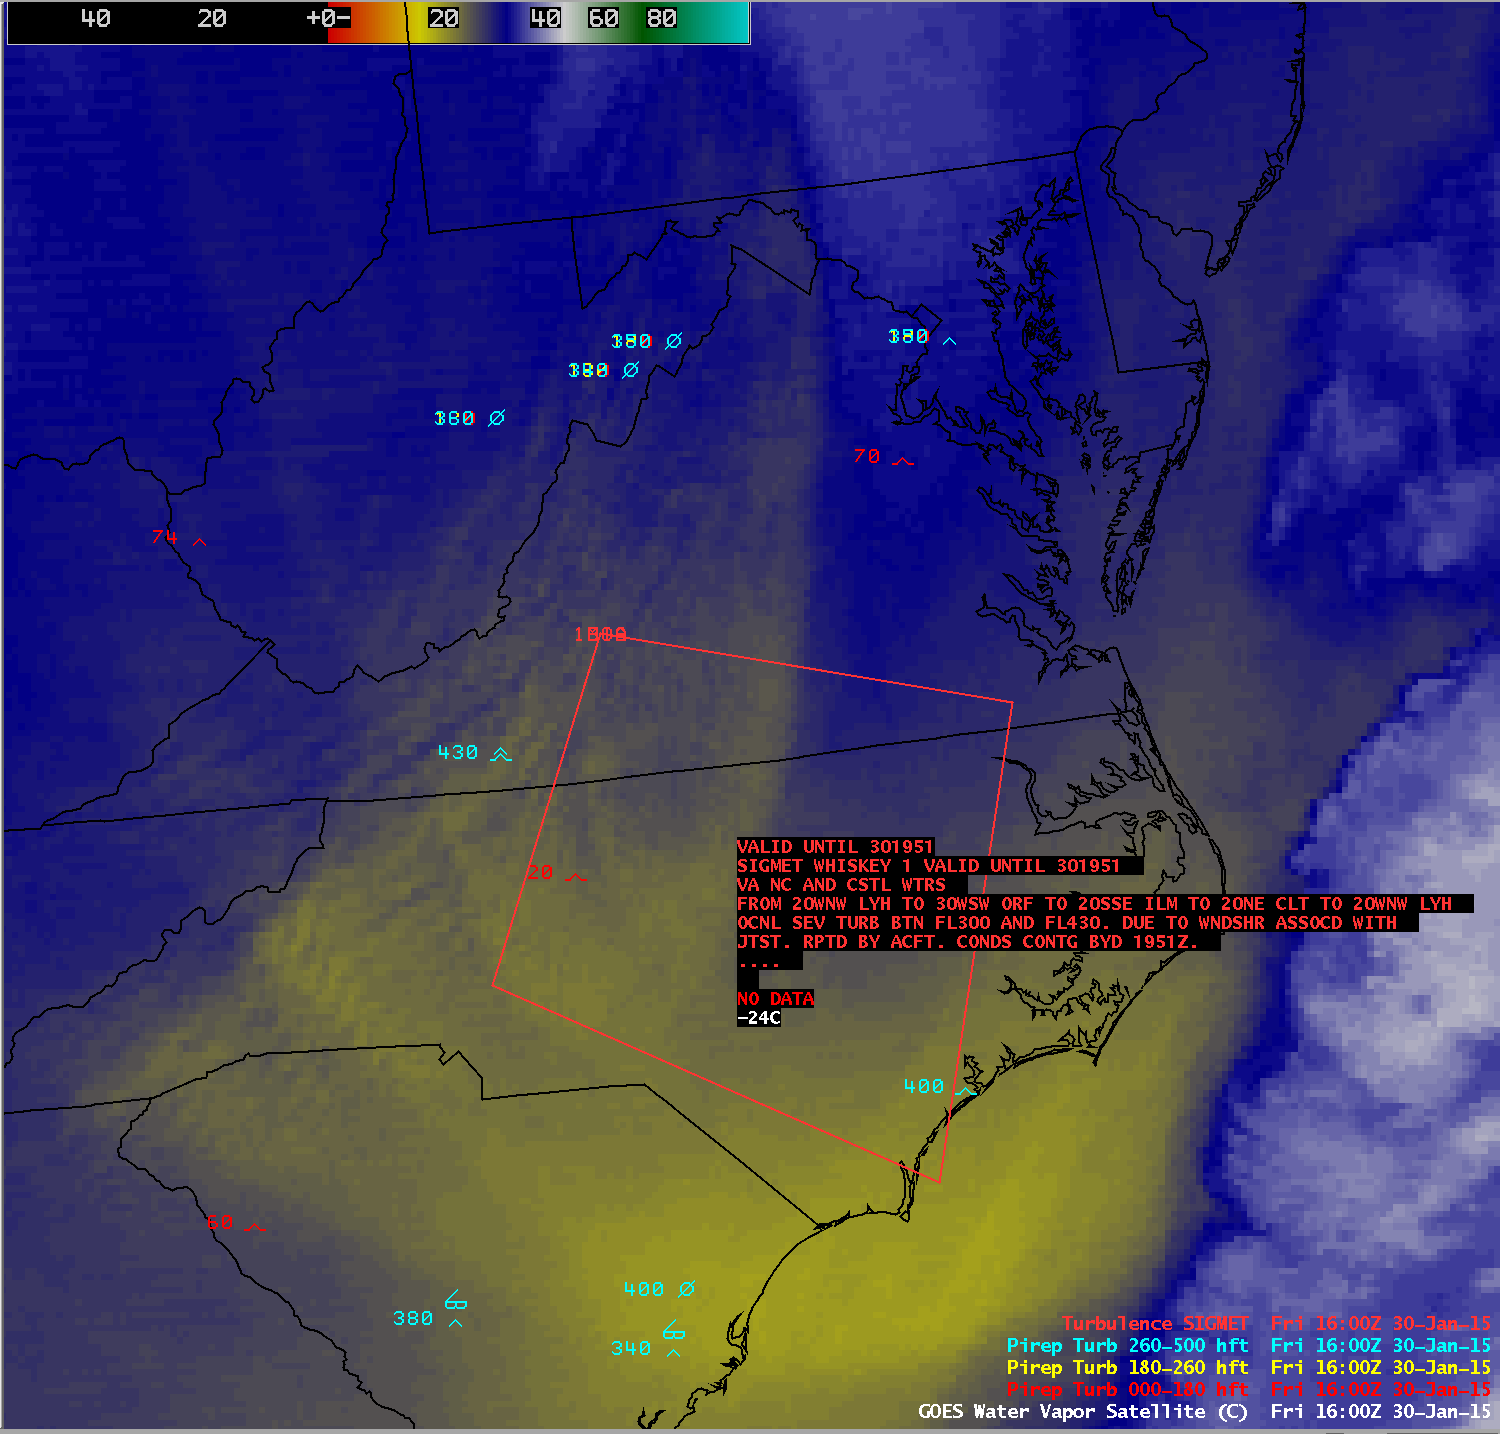 GOES-13 water vapor image with pilot reports and  boundaries of turbulence SIGMET